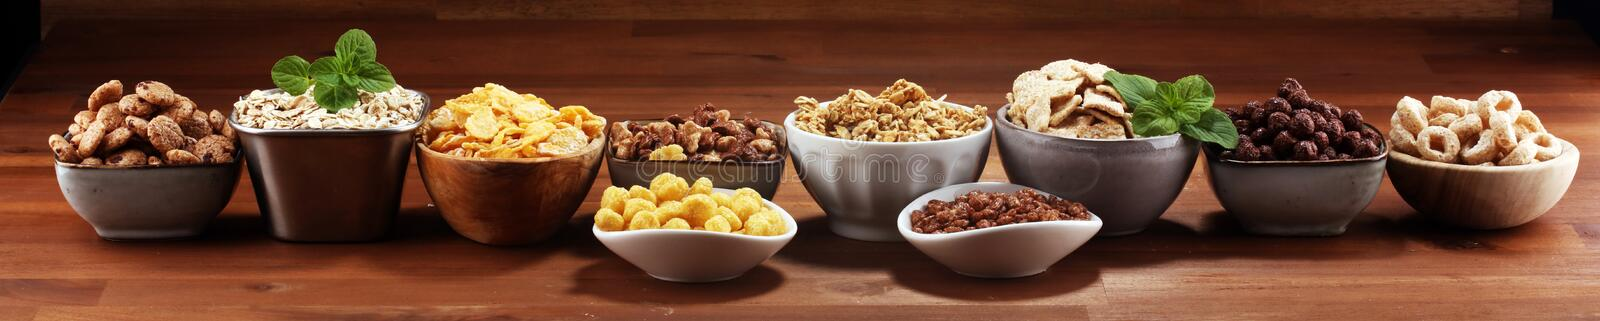 Cereal. Bowls of various cereals for breakfast. Muesli with kids cereals. Cereal. Bowls of various cereals for breakfast. Muesli with variety of kids cereals stock images